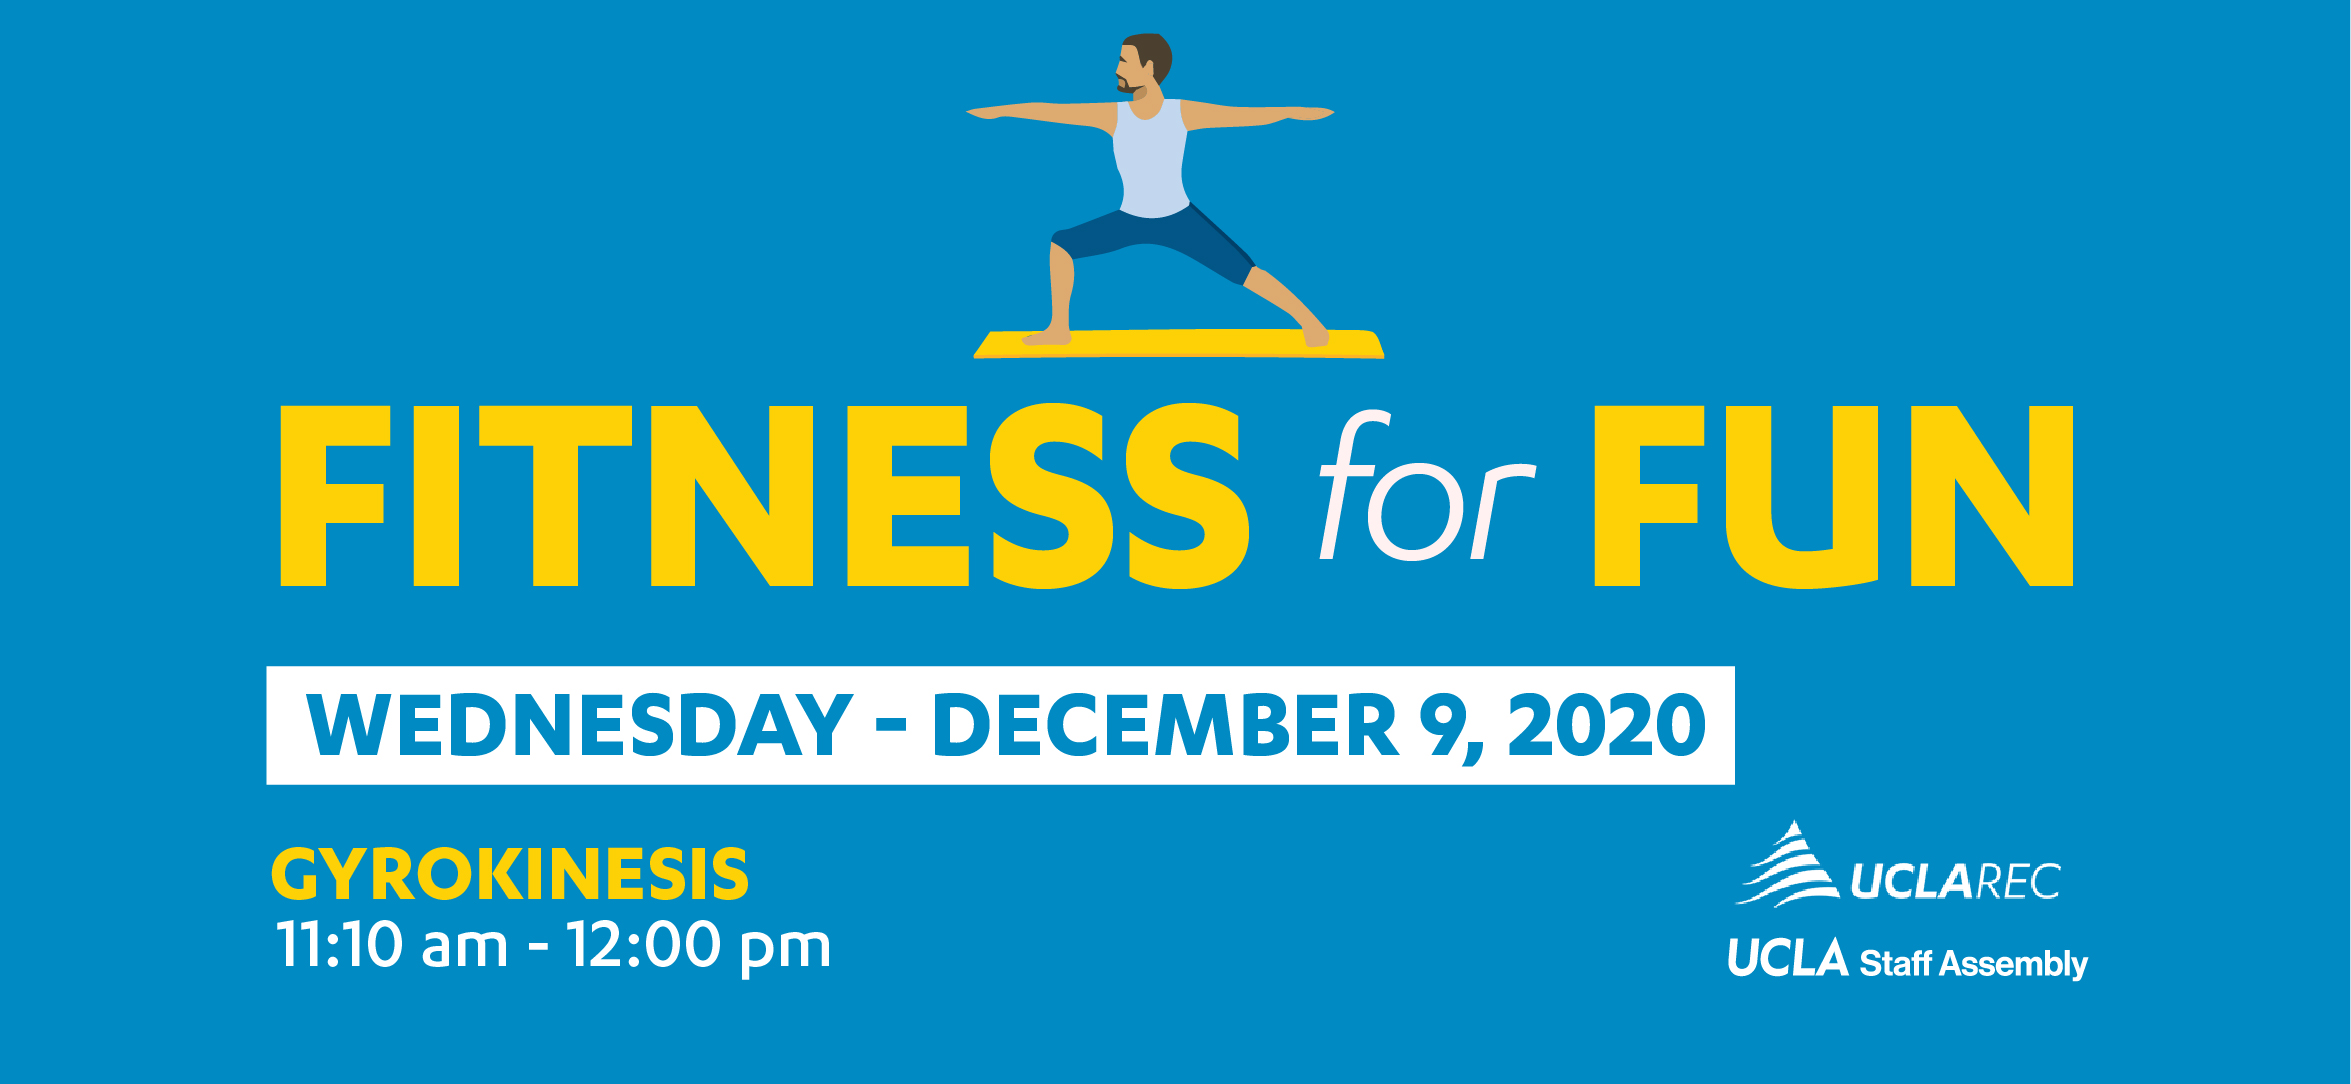 Fitness for Fun: Gyrokinesis - Wed, Dec. 9 at 11:10am - 12:00pm